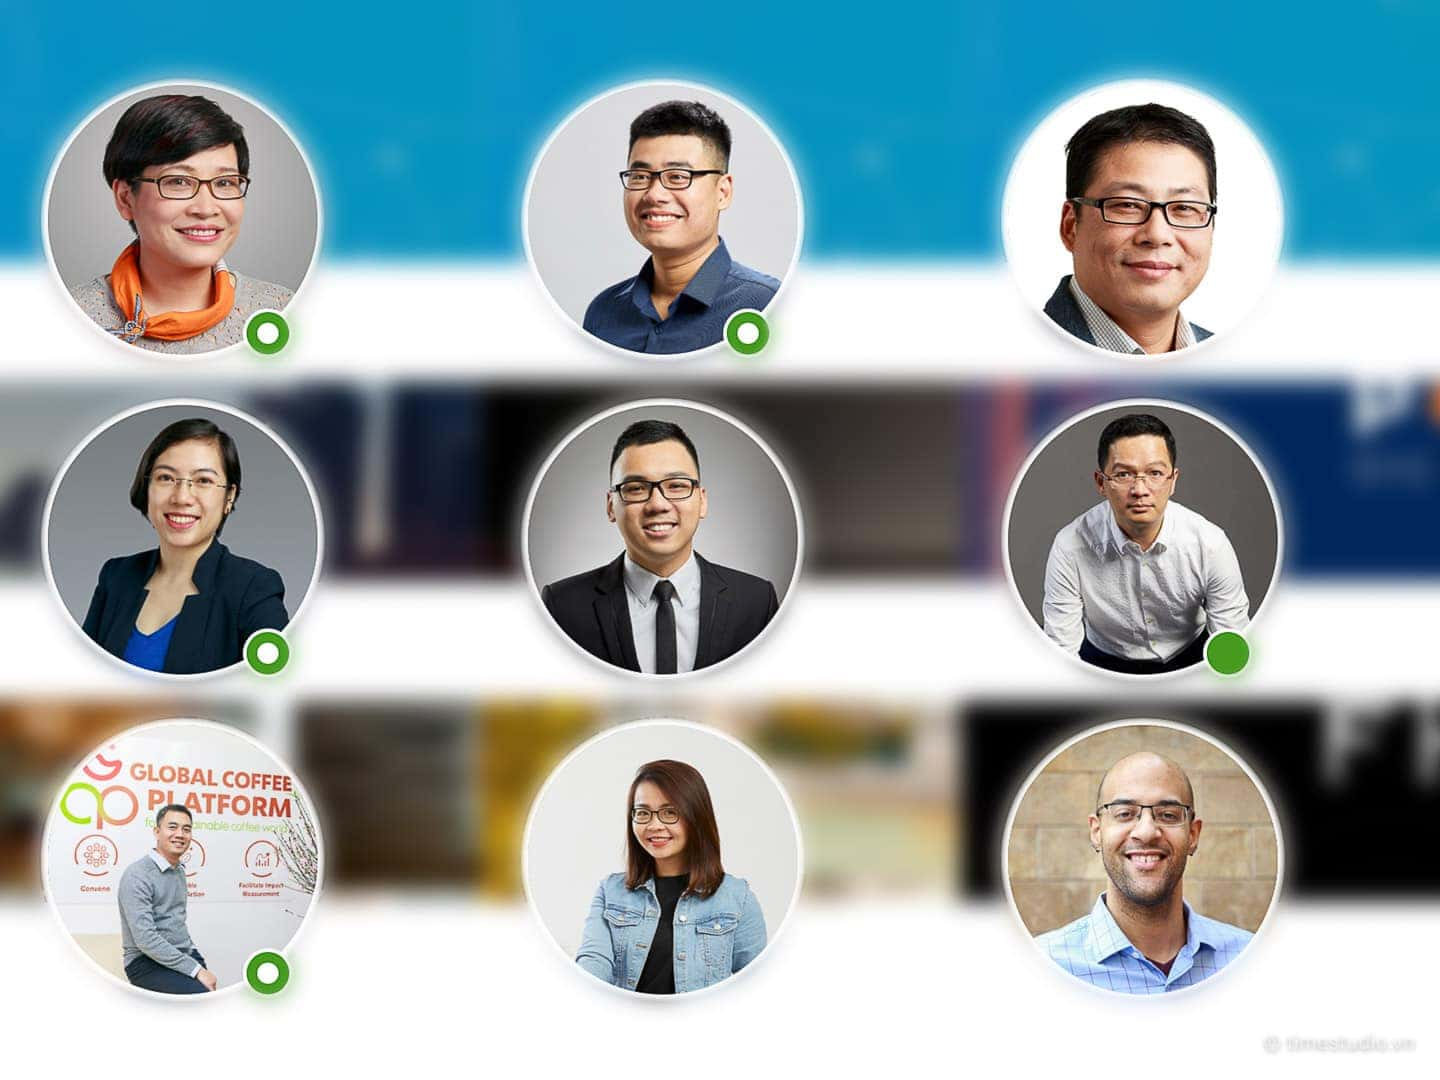 LinkedIn profile photos by Paratime Studio